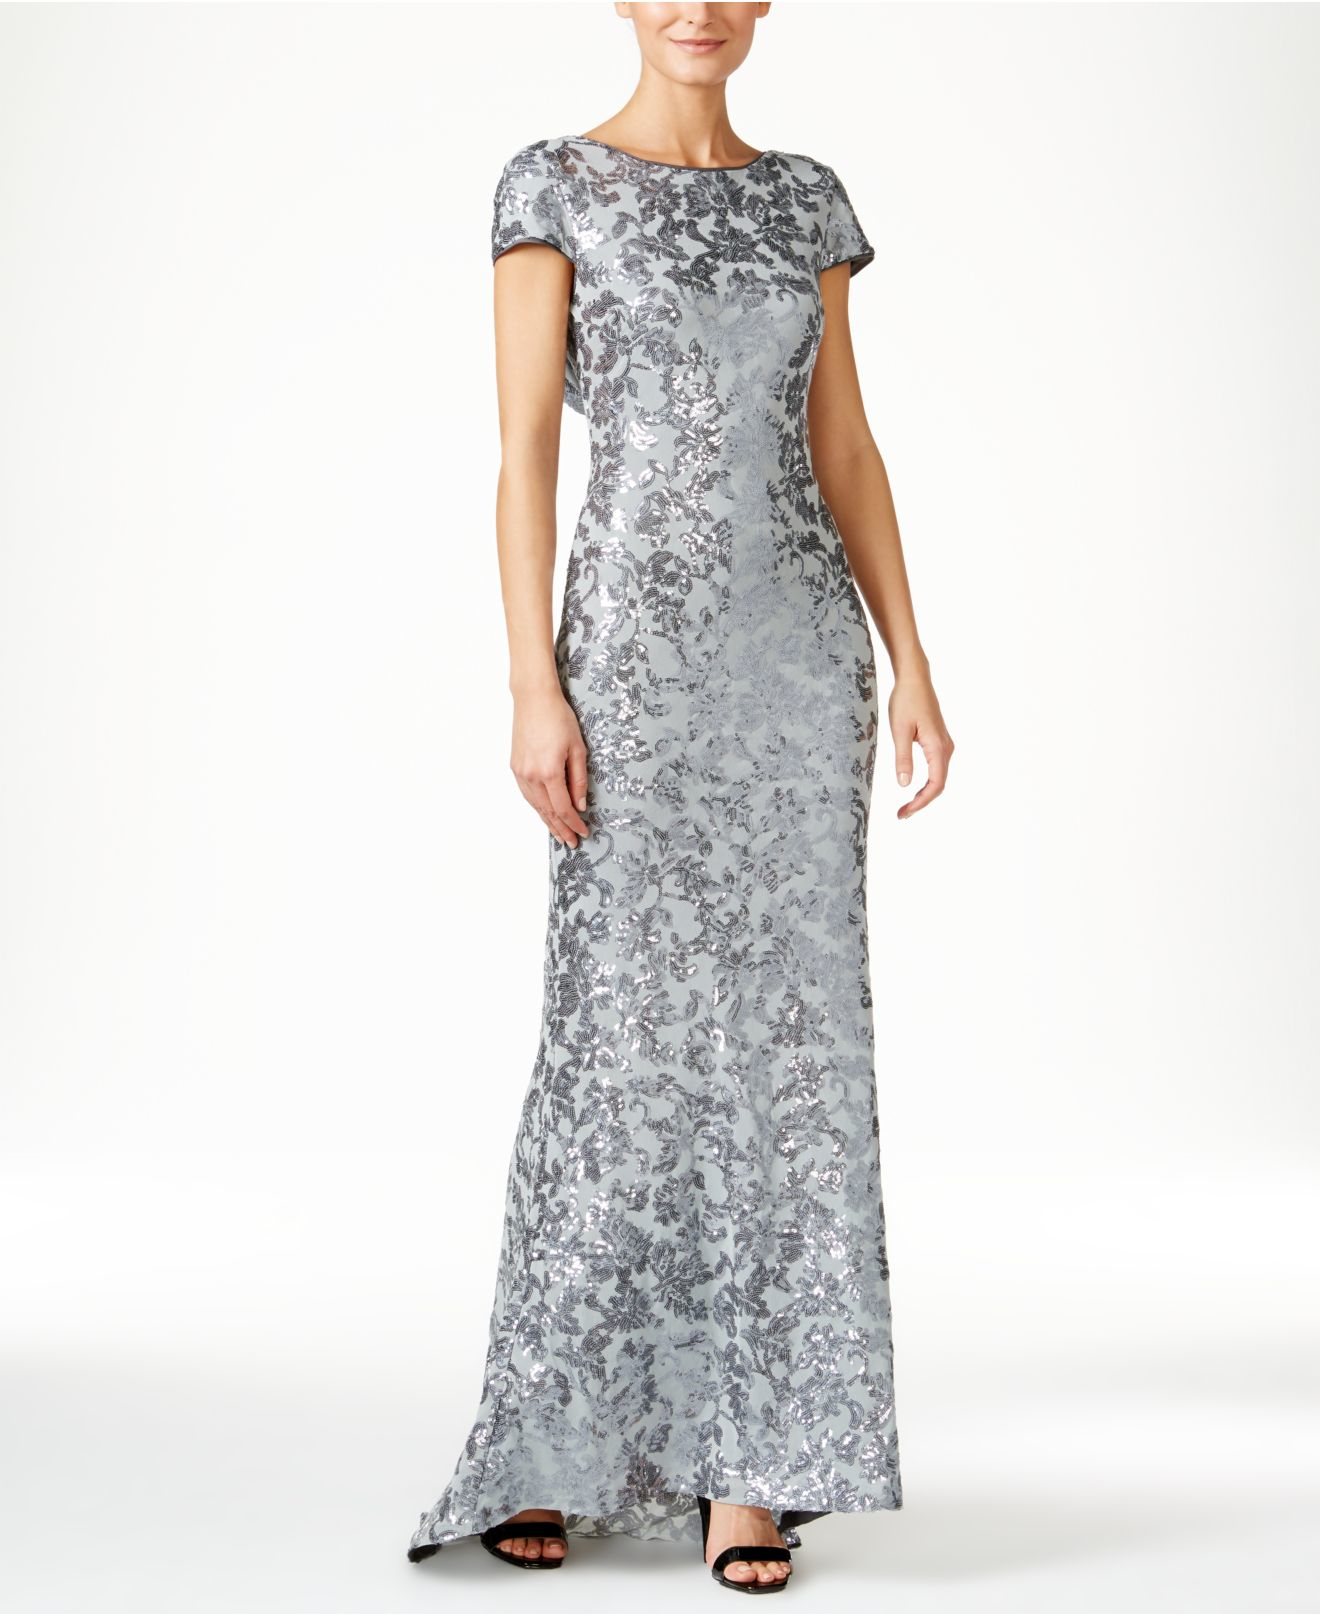 aba1f5ed82a6 Calvin Klein Sequined Cap-sleeve Gown in Gray - Lyst